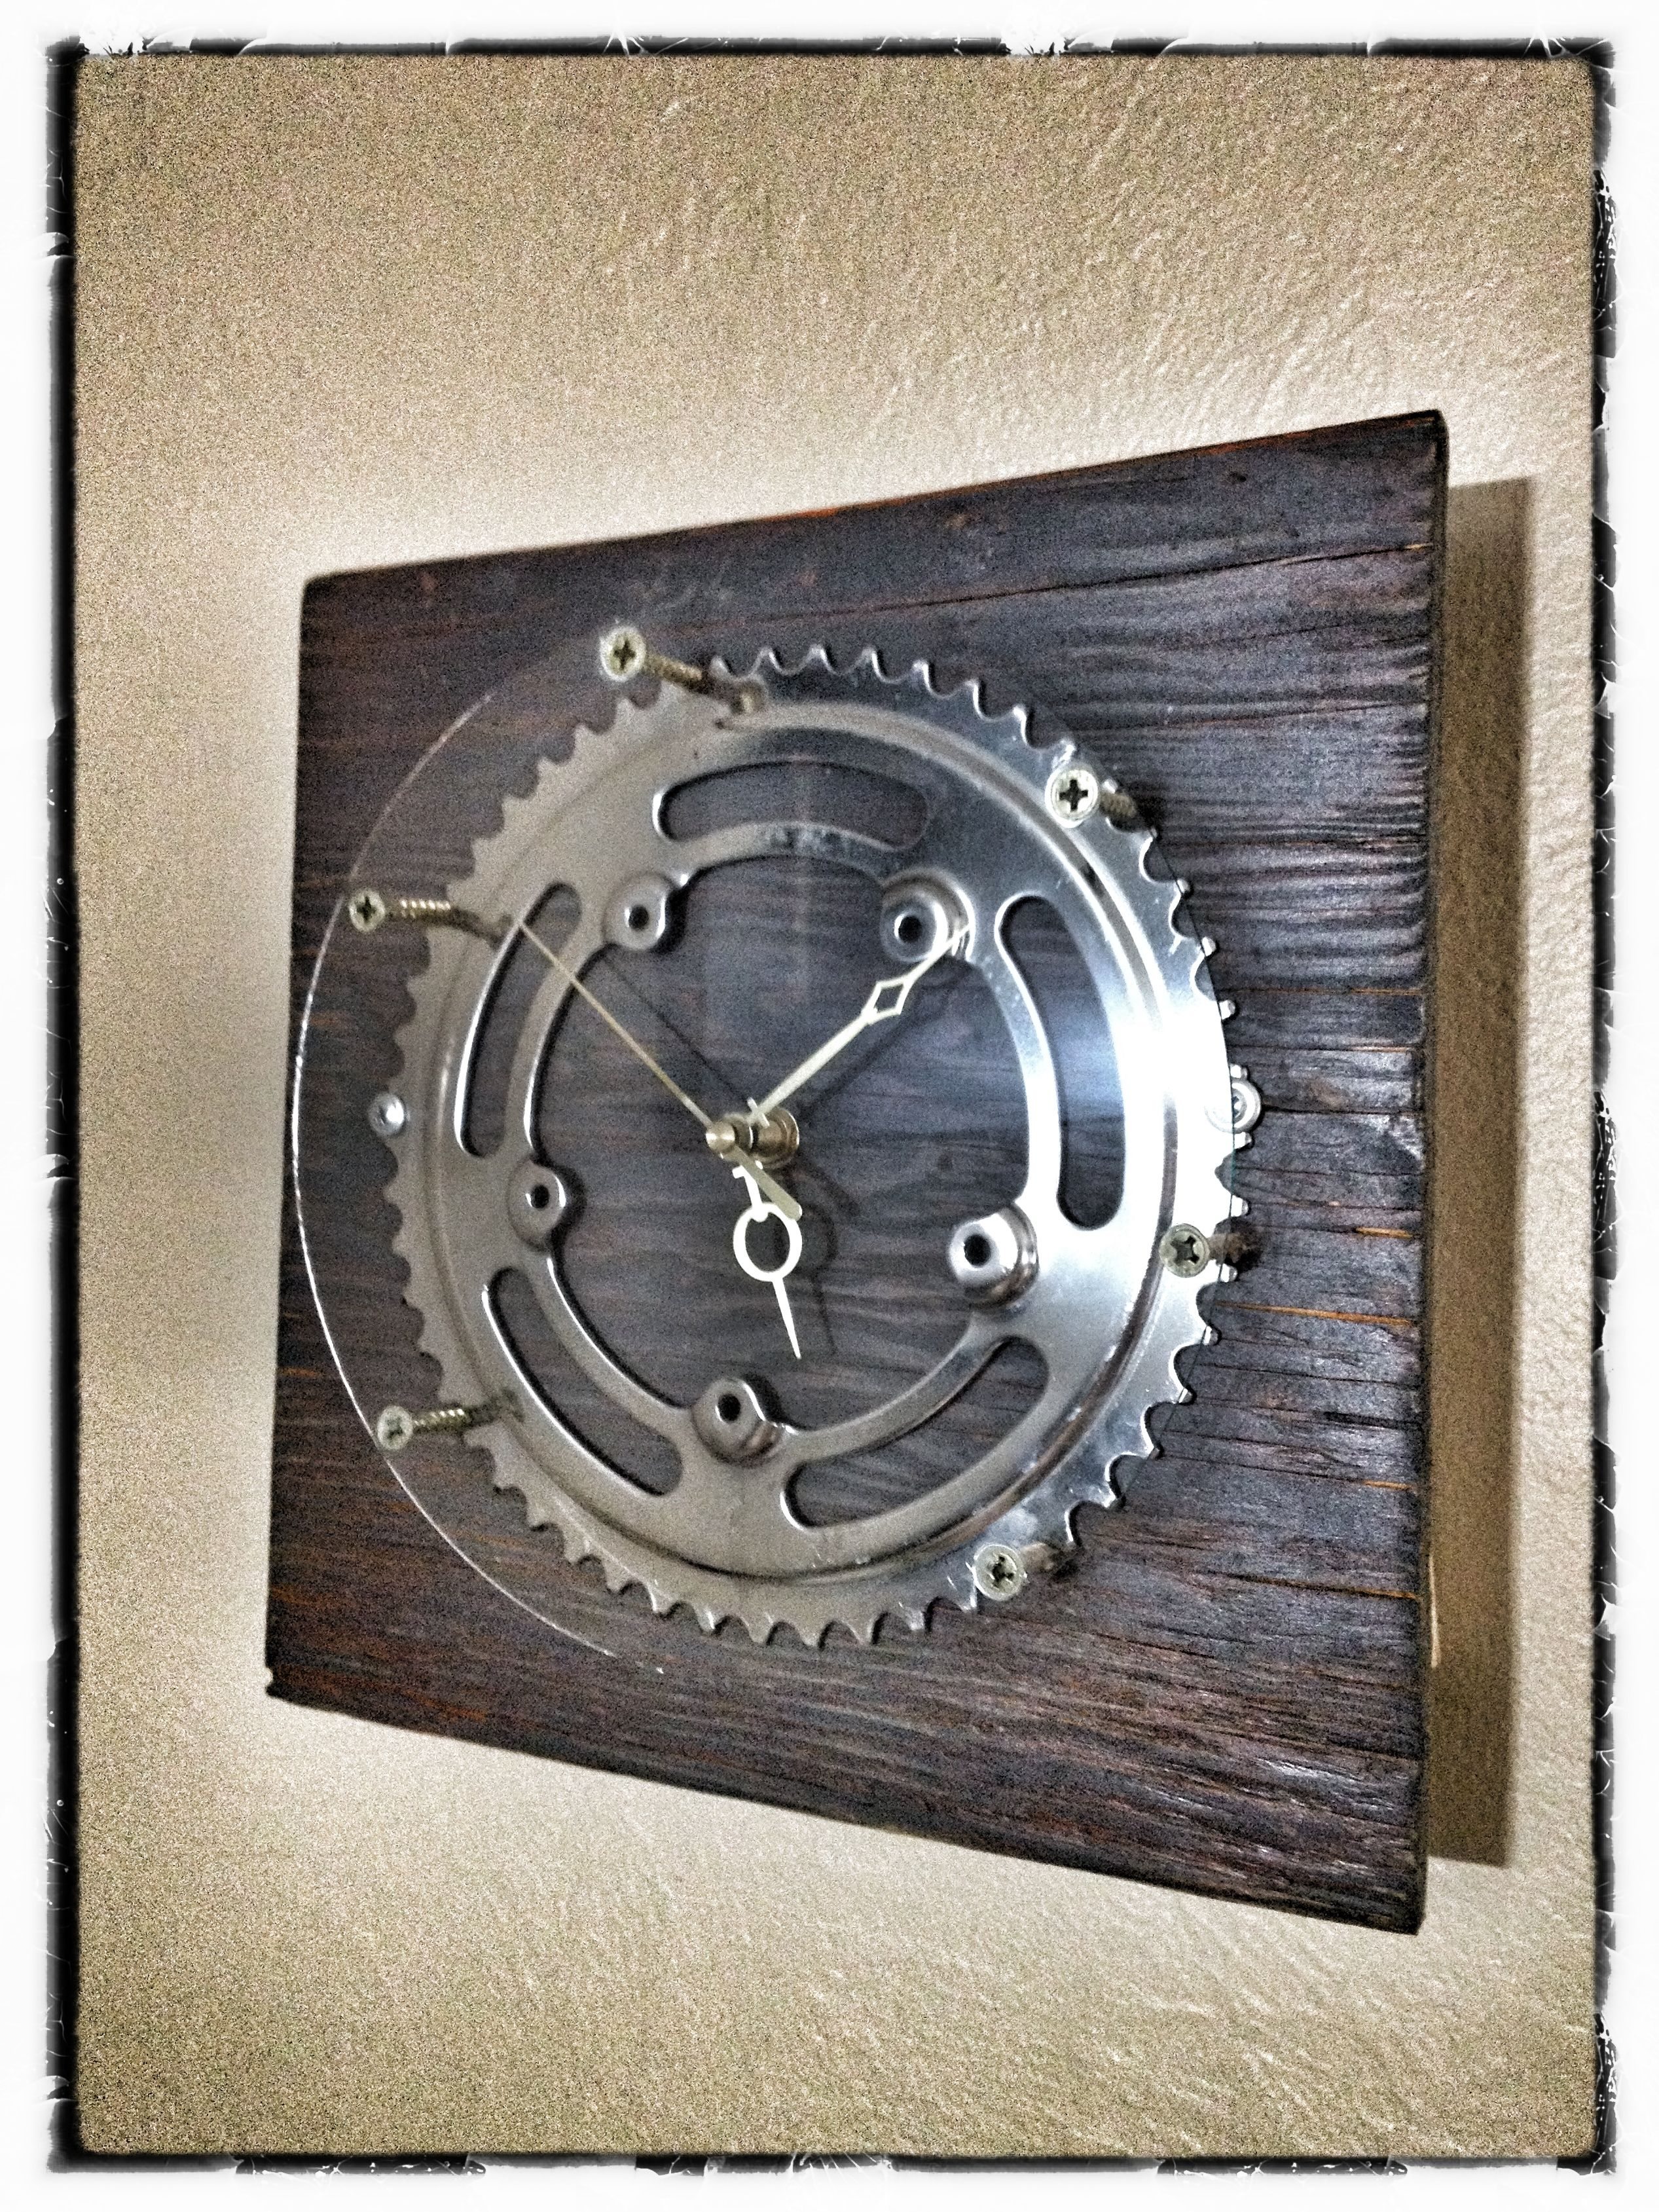 Bicycle Furniture Homemade Clock From Scrap Wood Bike Parts And Clock Parts From A